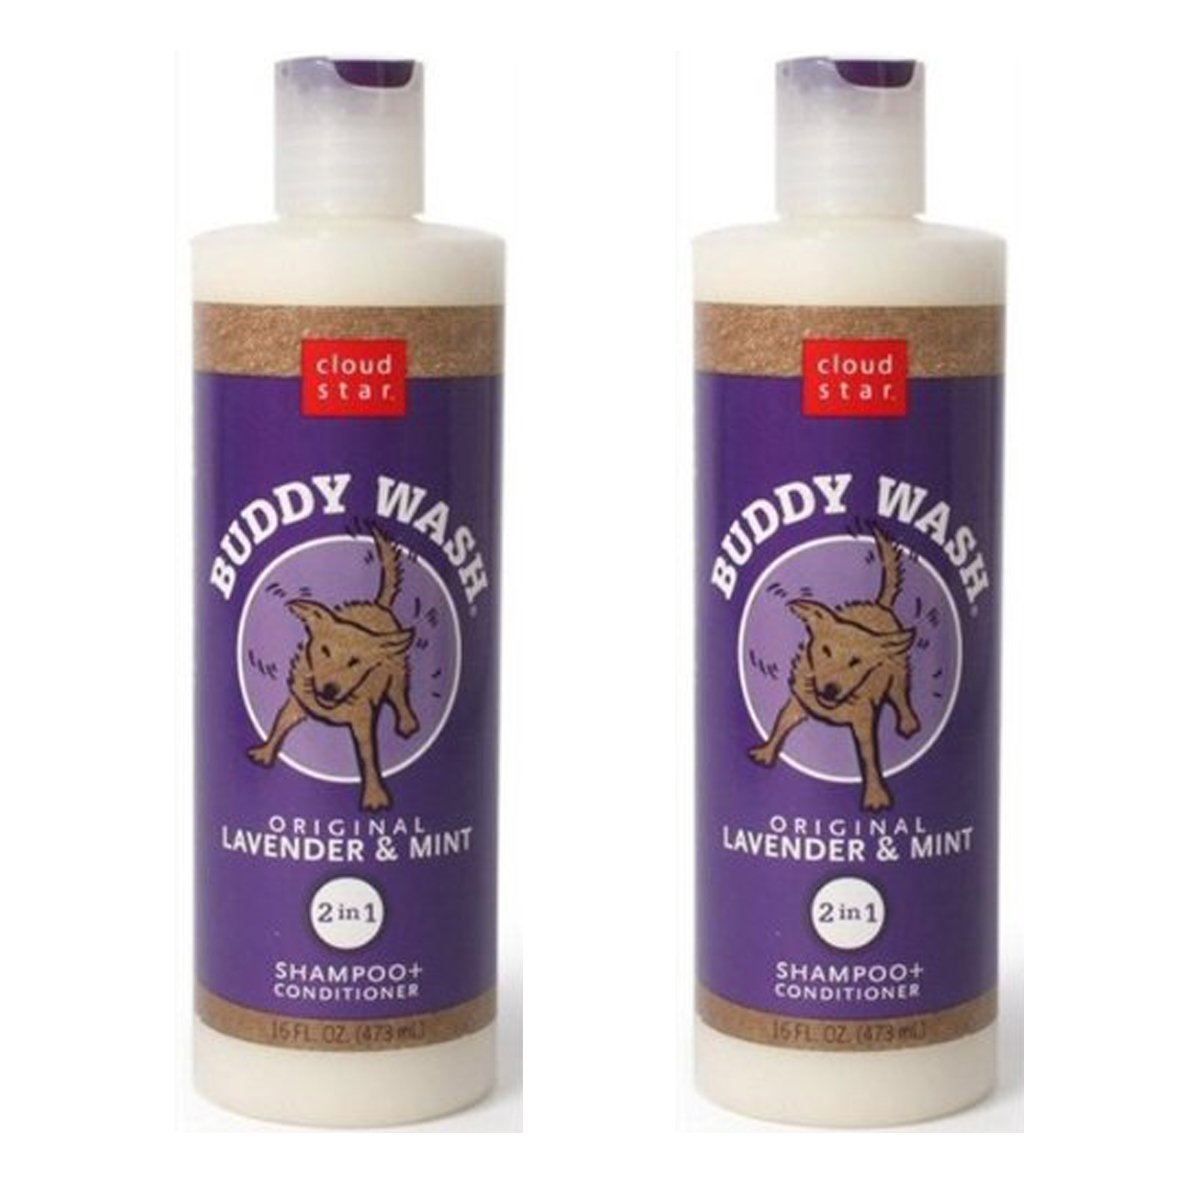 Cloud Star Buddy Wash Lavender & Mint 2-in-1 Dog Shampoo + Conditioner 32 Oz by Buddy Biscuits (Image #1)